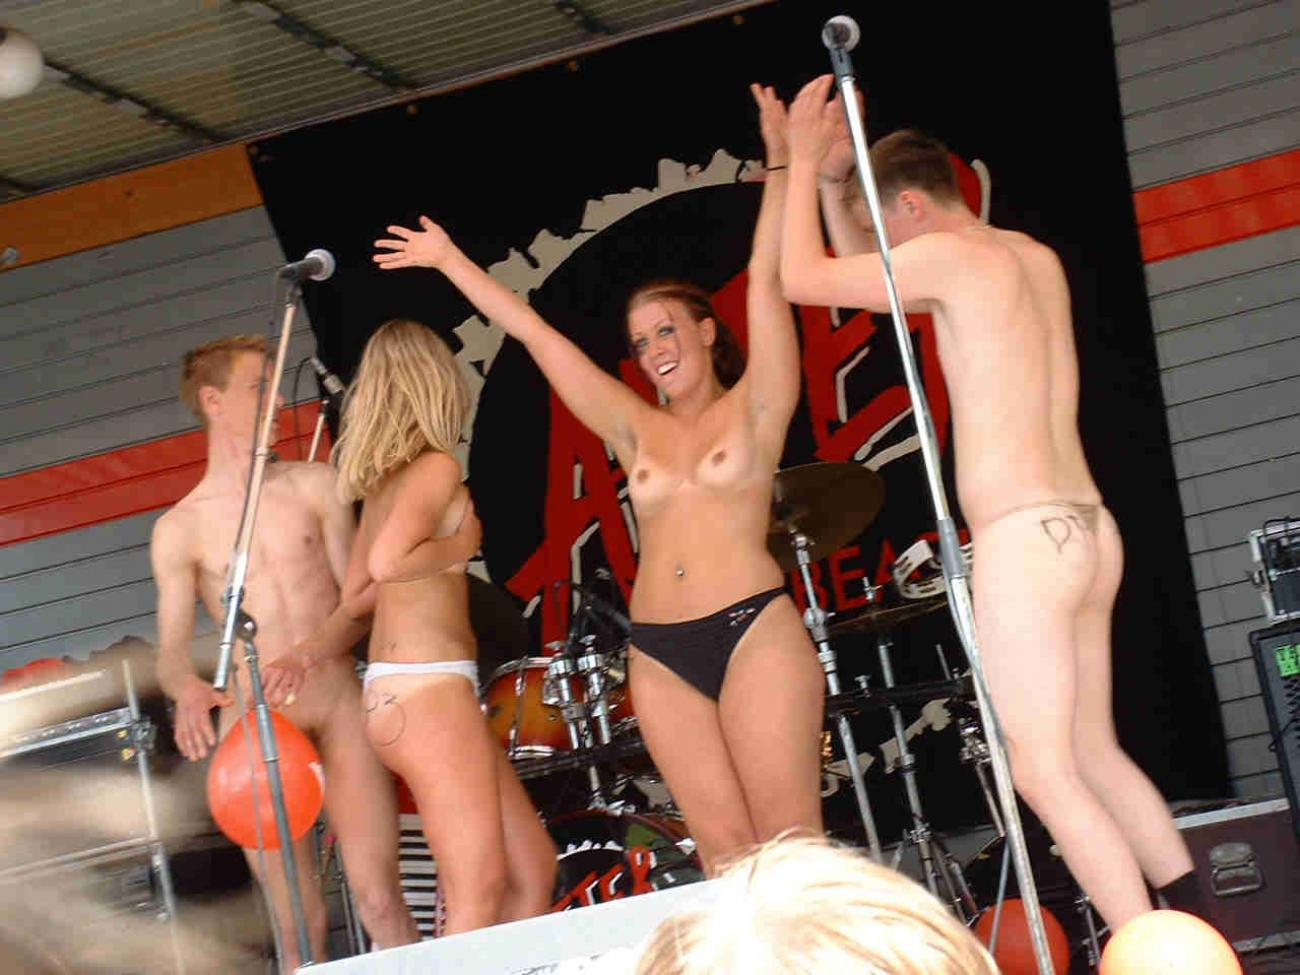 Nude on stage contest